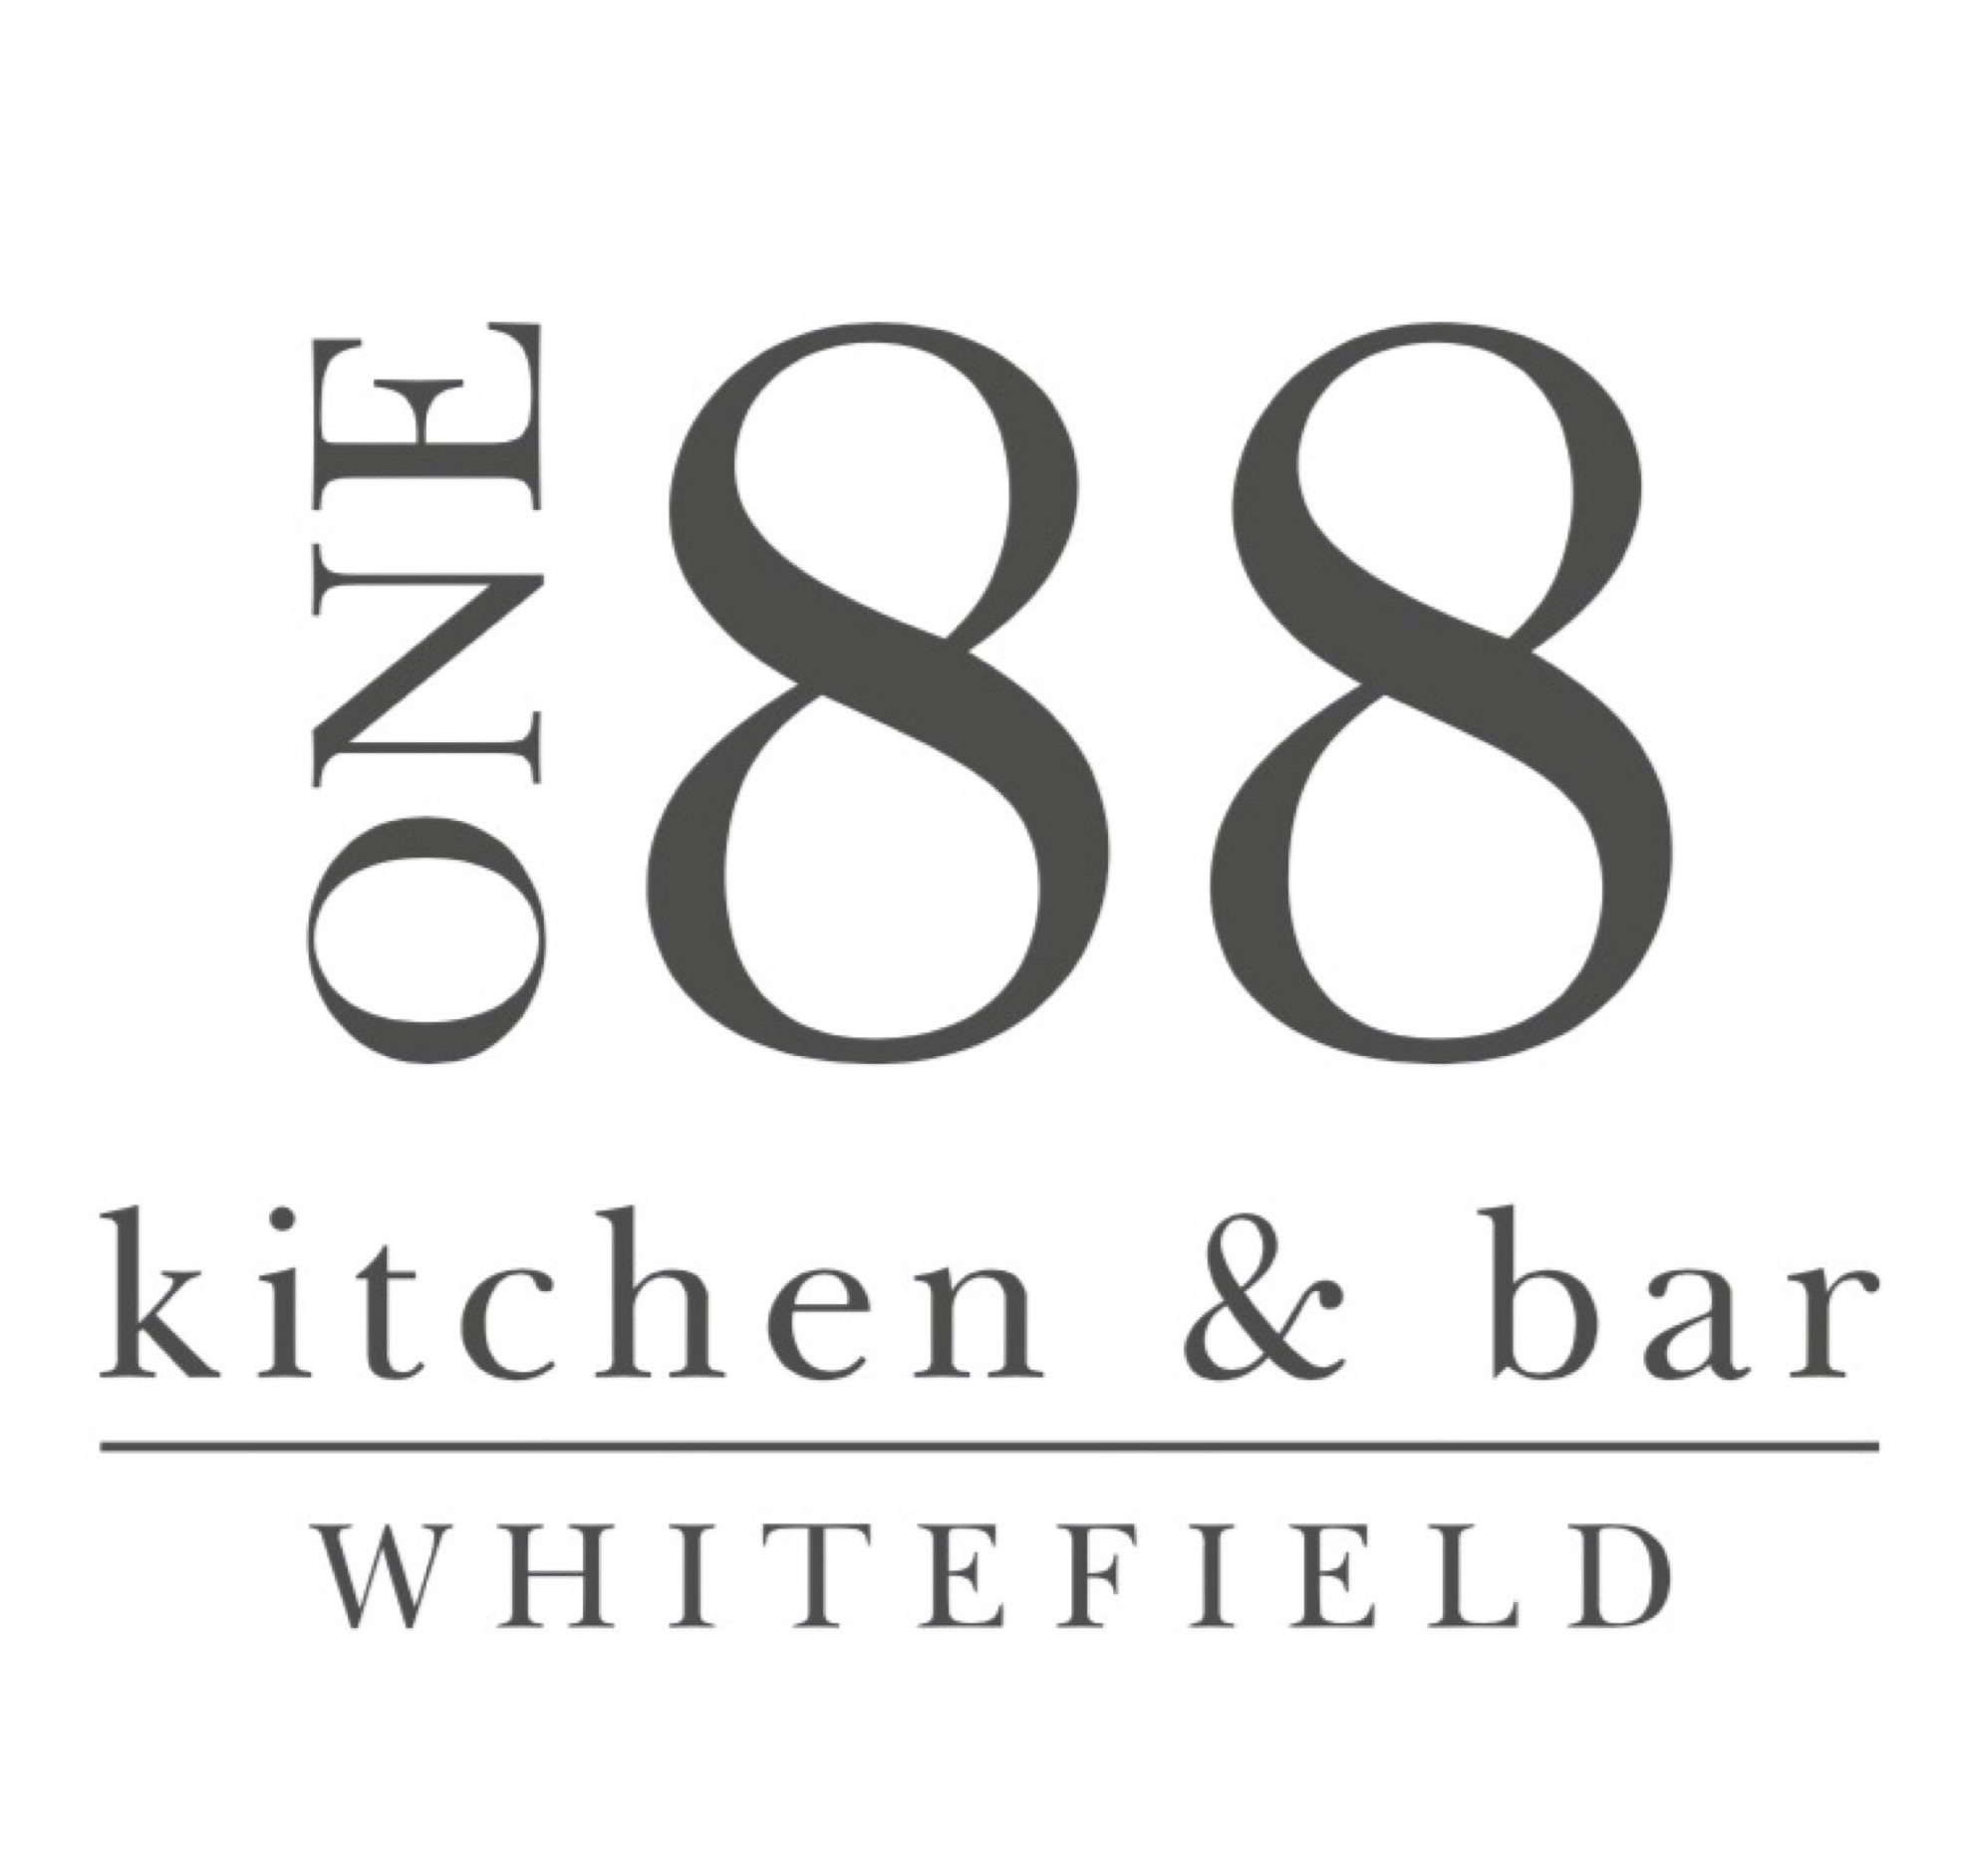 One88 Whitefield